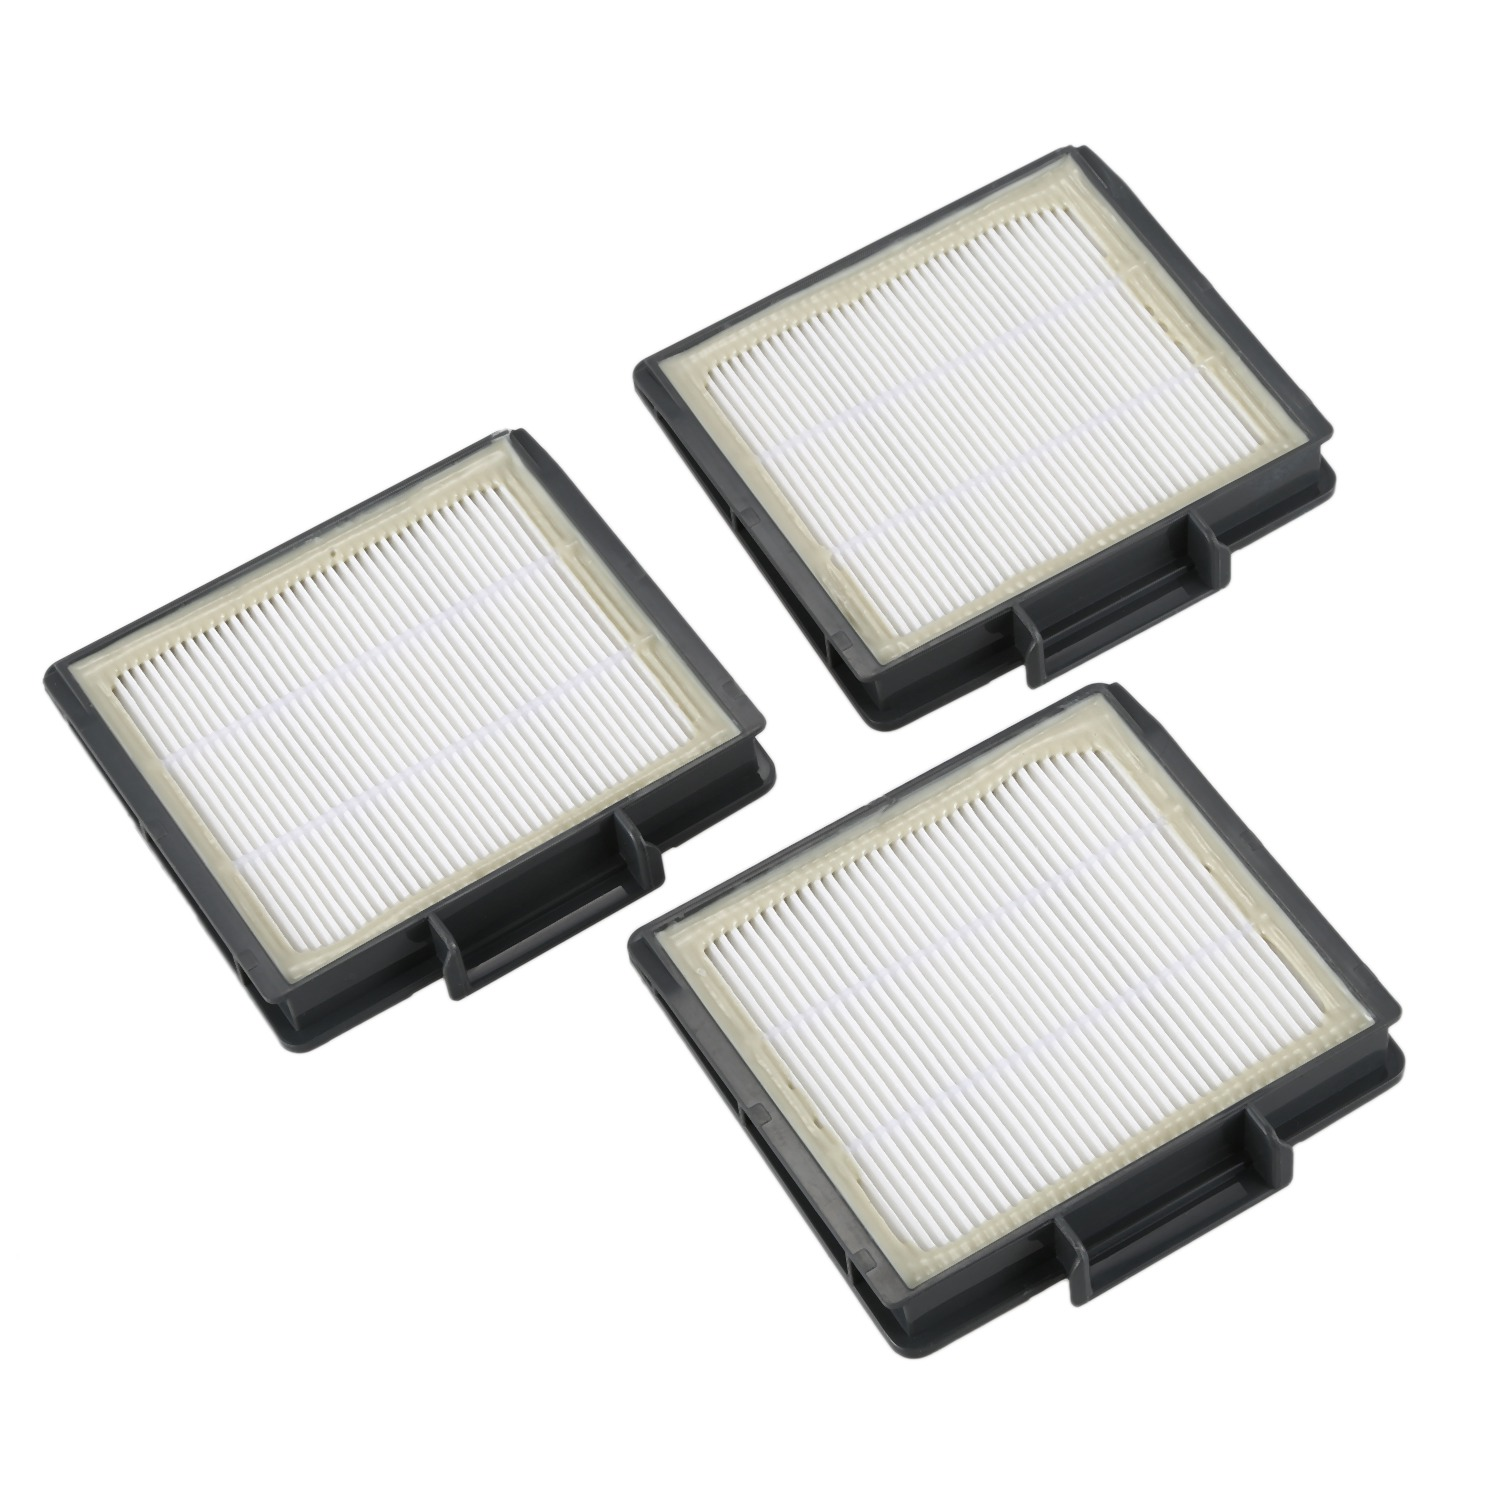 Vacuum Cleaner Parts Home Appliances 3pcs Pre-motor Hepa Filters For Shark Ion Robot Rv700_n Rv720_n Rv850 Rv851wv Rv850brn/wv Vacuum Cleaner Part Fit # Rvffk950